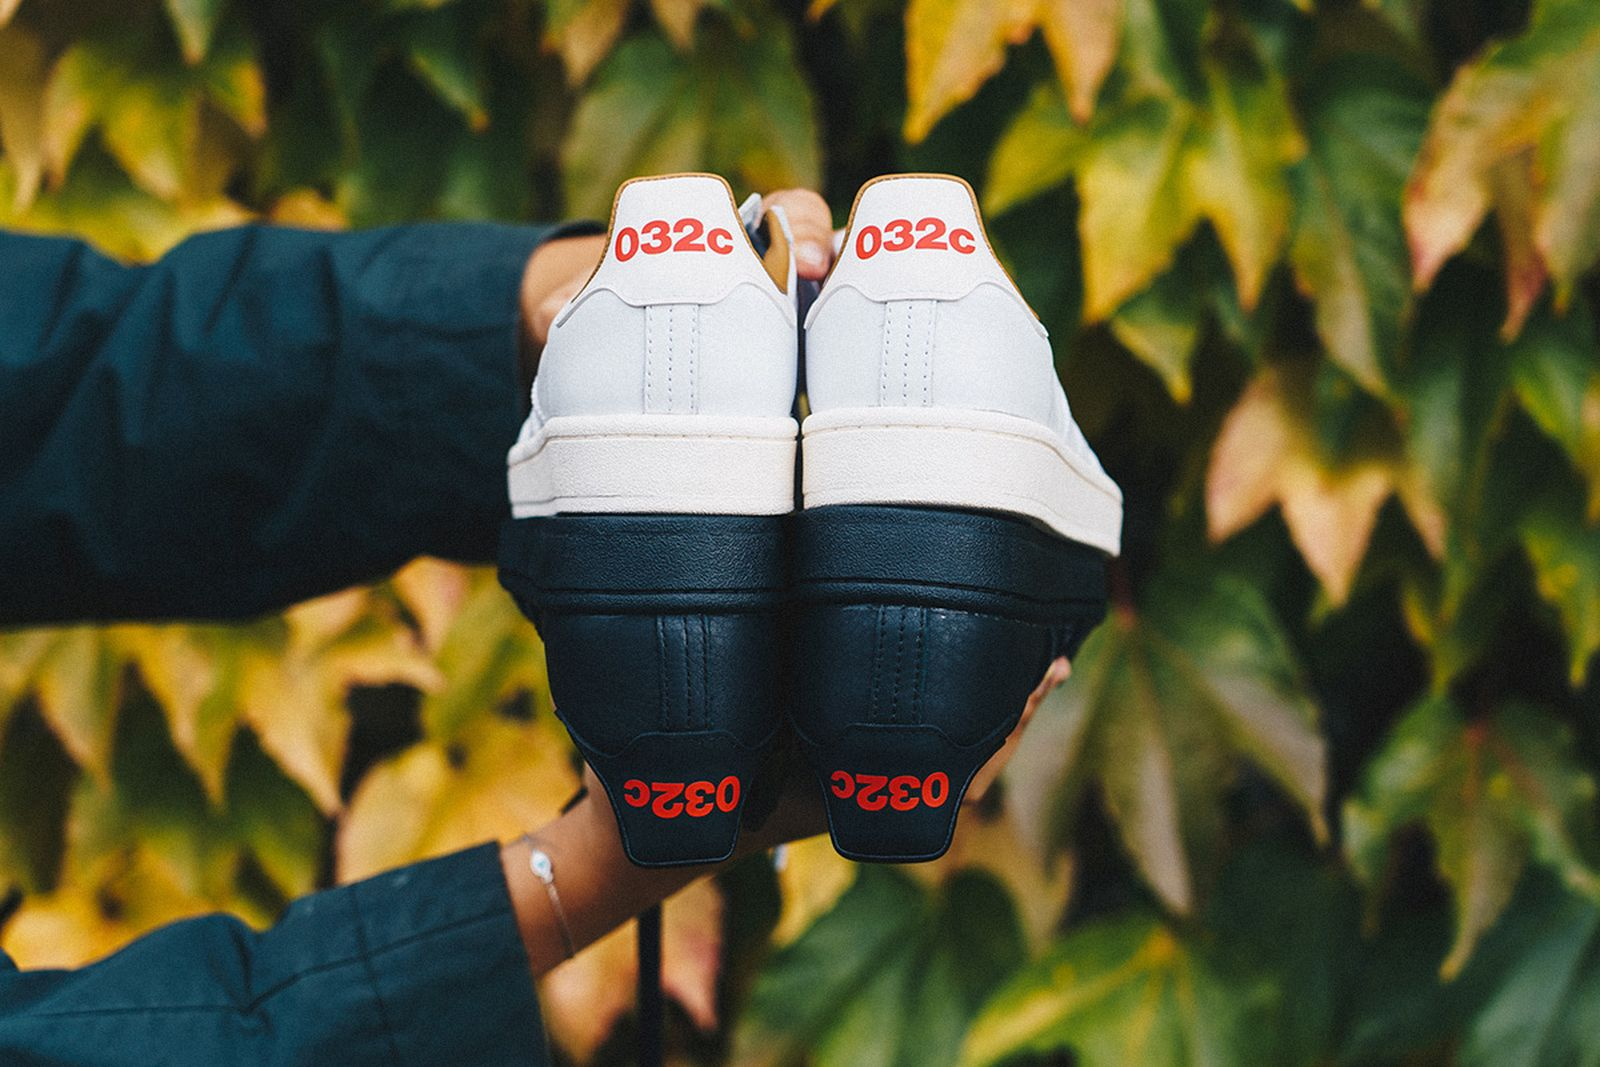 underrated-collab-sneakers-adidas-campus-032c-03